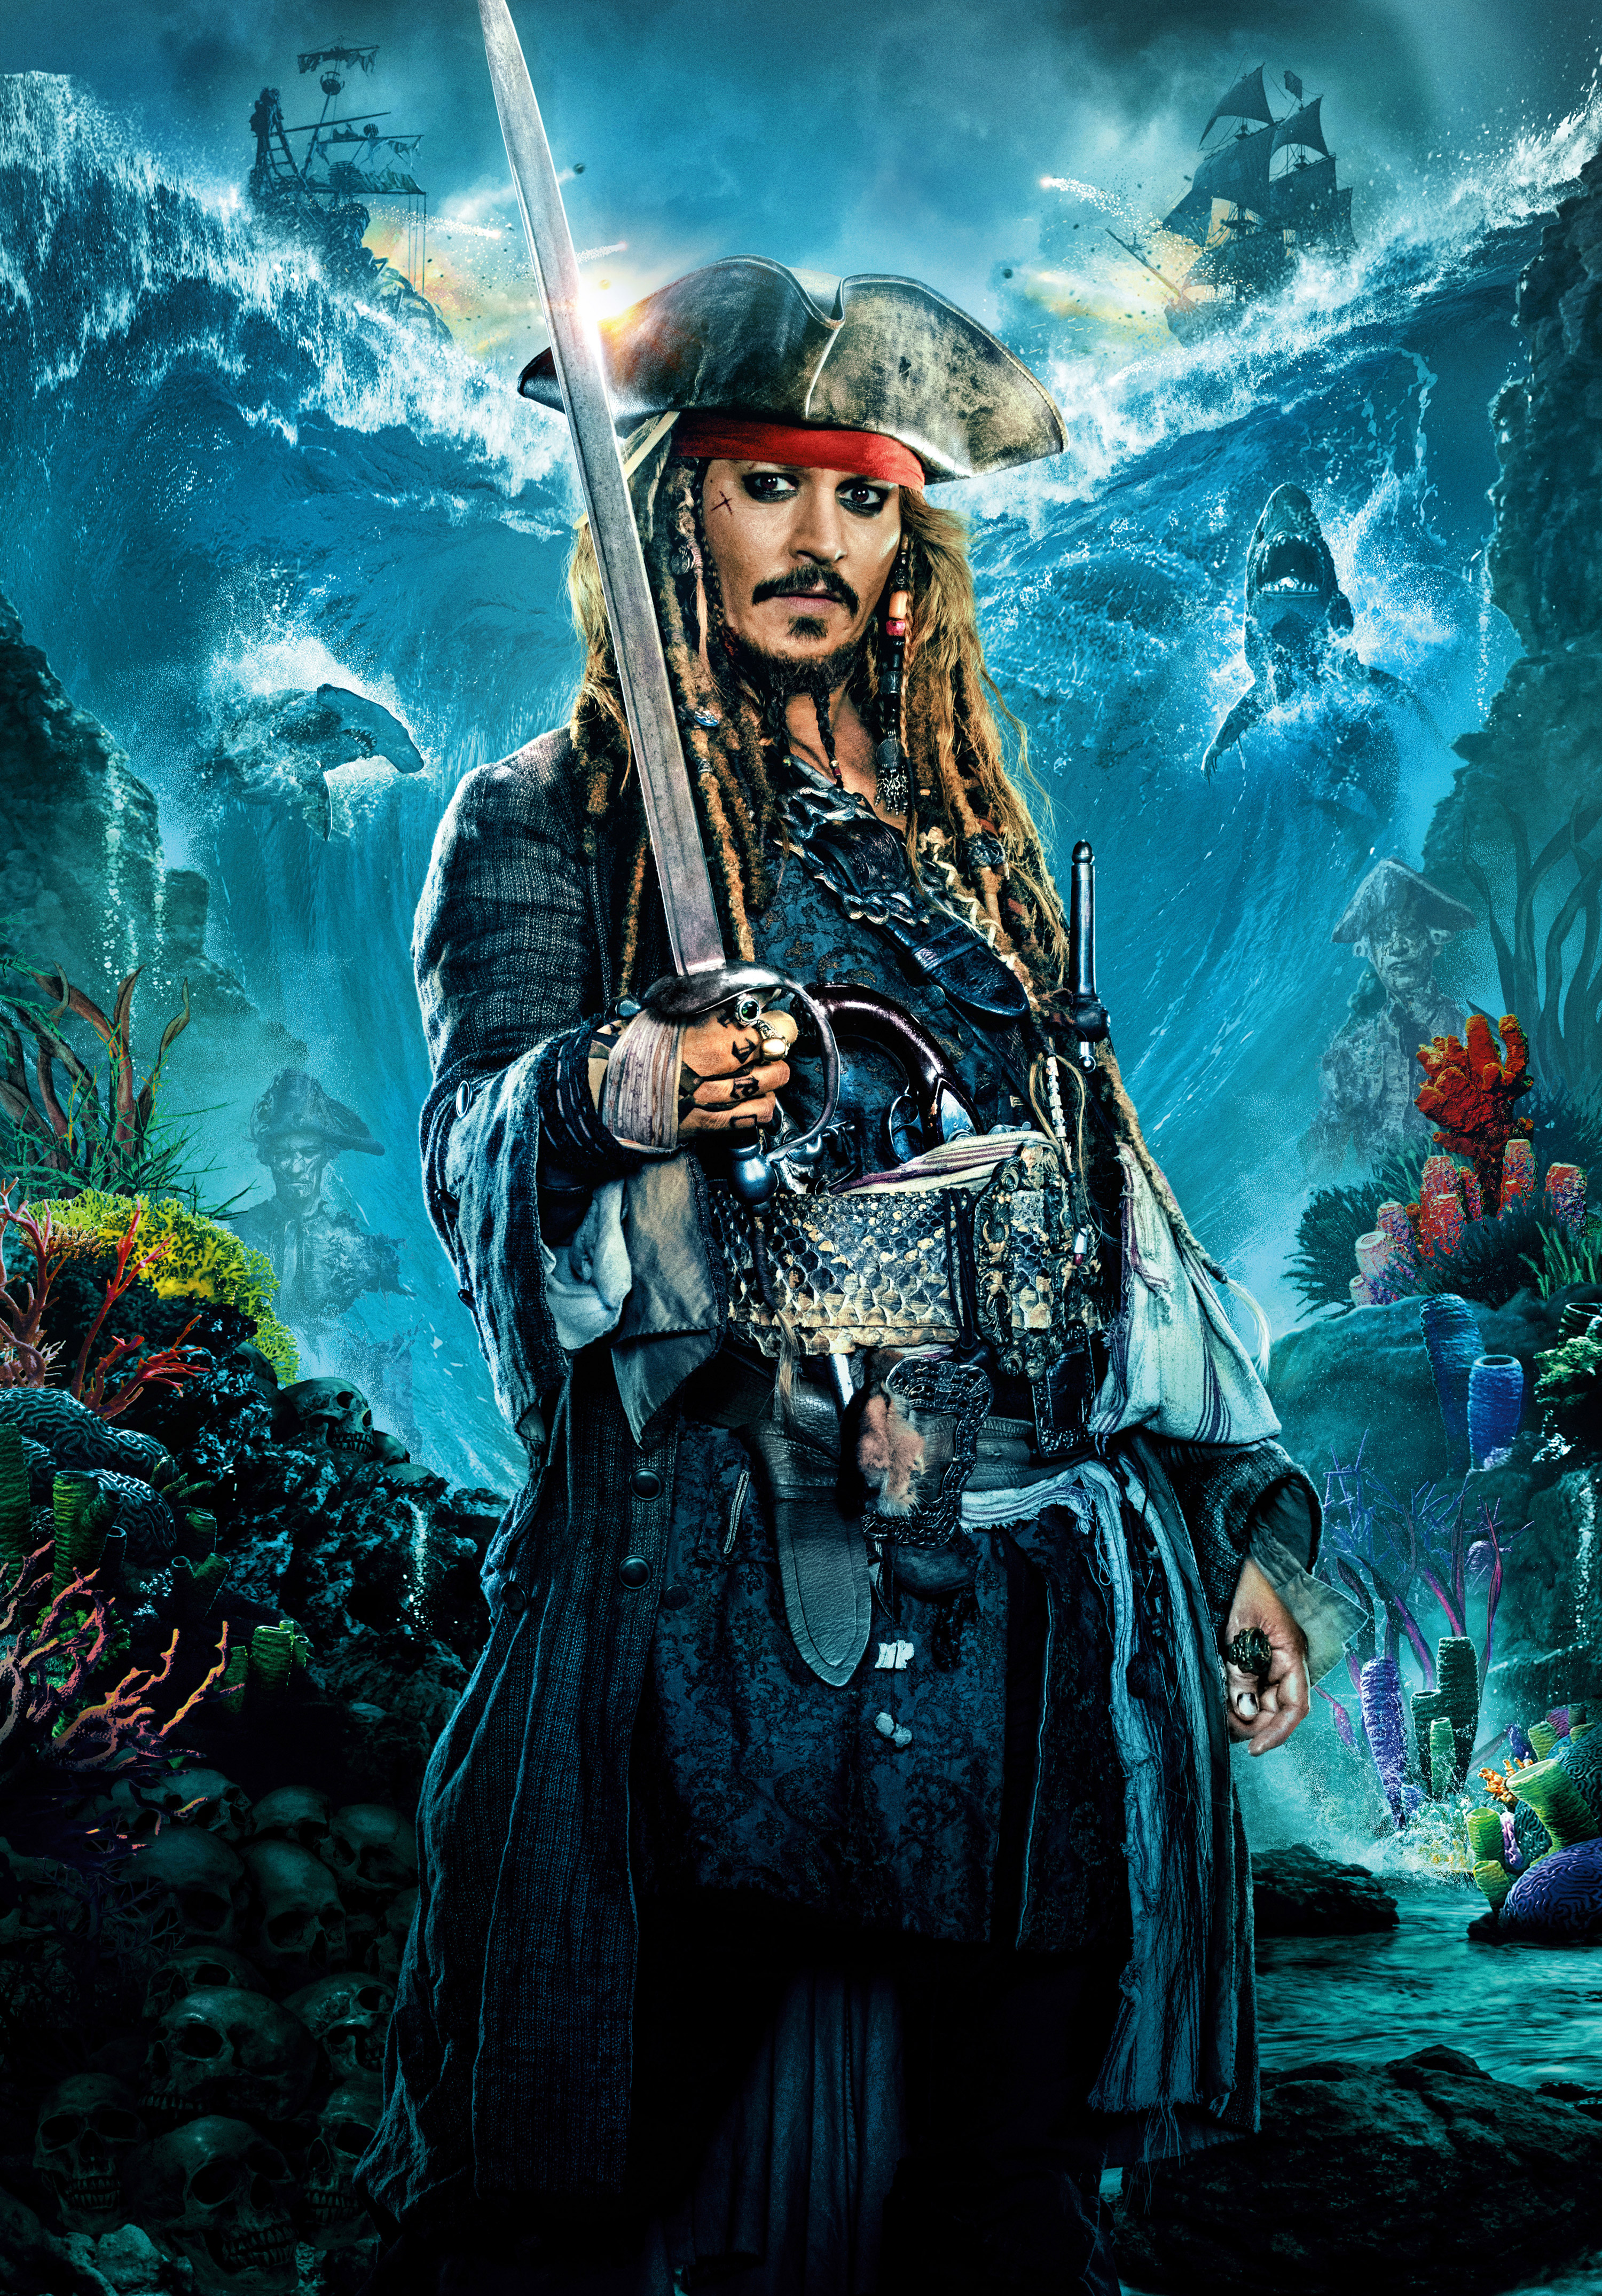 Pirates of the caribbean 5 big hd posters collection youloveit pirates of the caribbean 5 captain jack sparrow poster altavistaventures Image collections